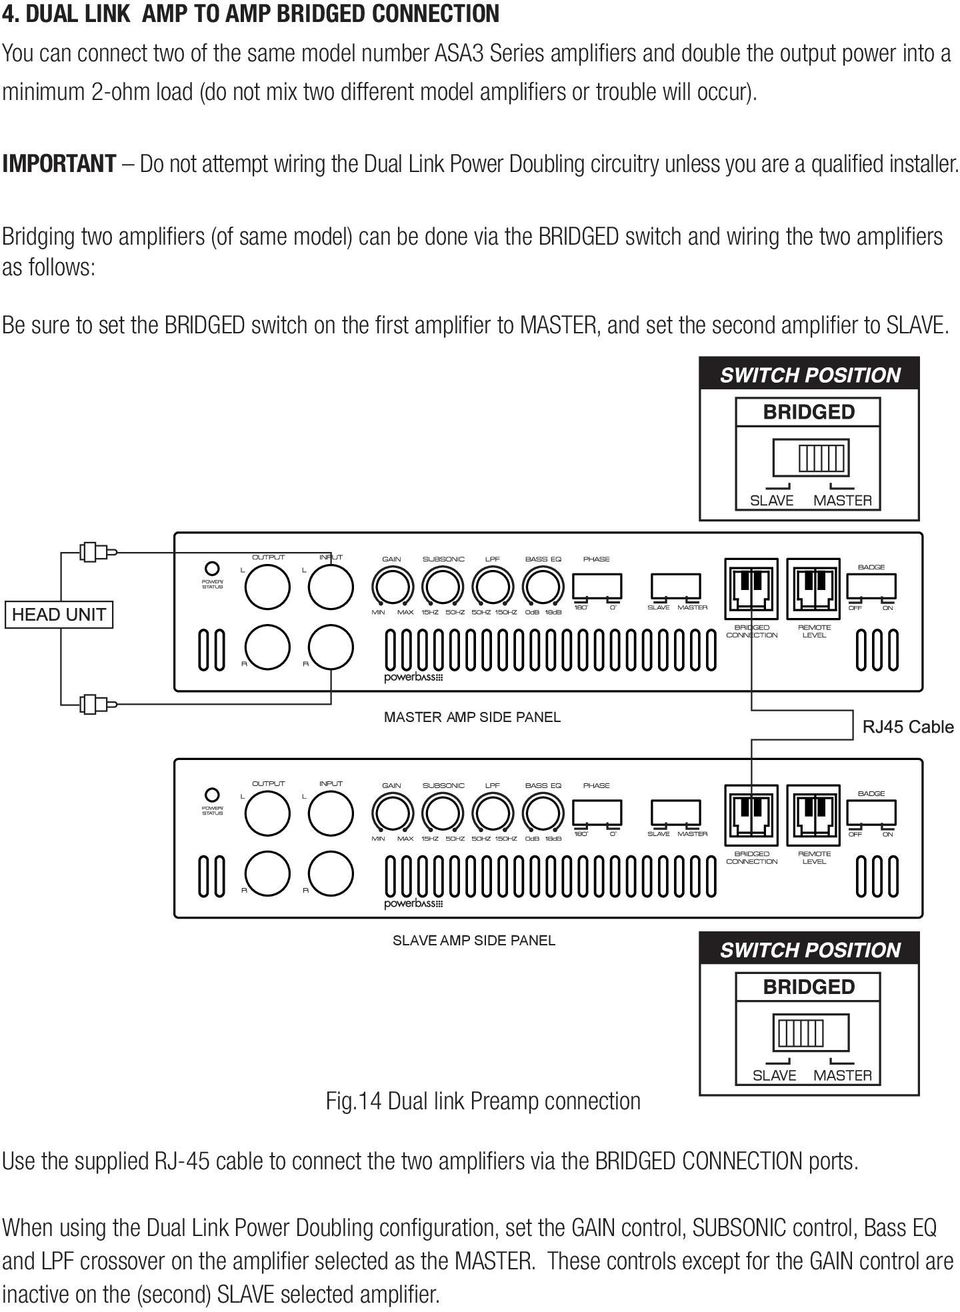 Bridging two amplifiers (of same model) can be done via the BRIDGED switch and wiring the two amplifiers as follows: Be sure to set the BRIDGED switch on the first amplifier to MASTER, and set the